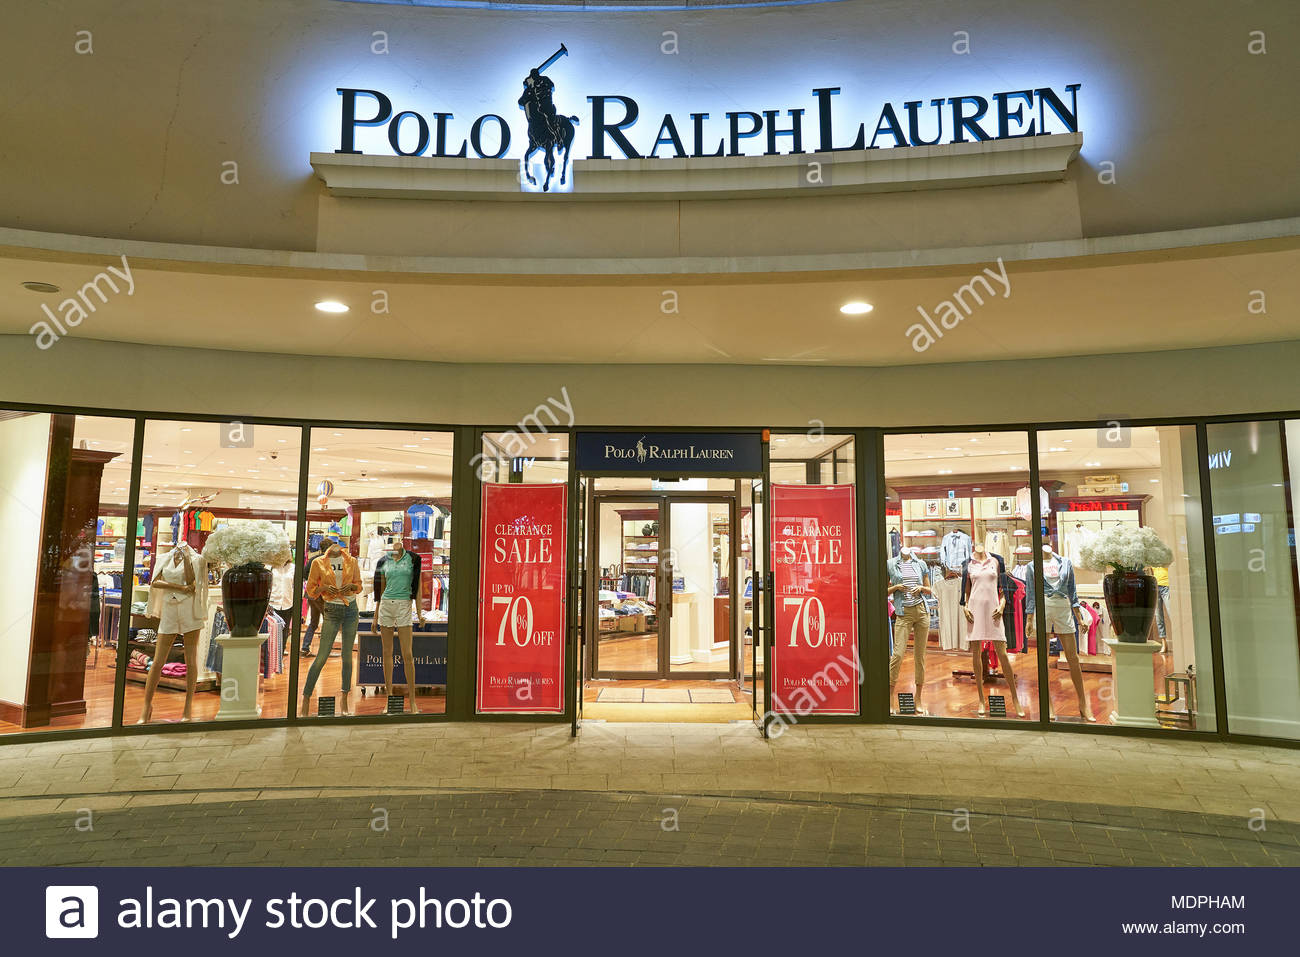 polo ralph lauren magasin